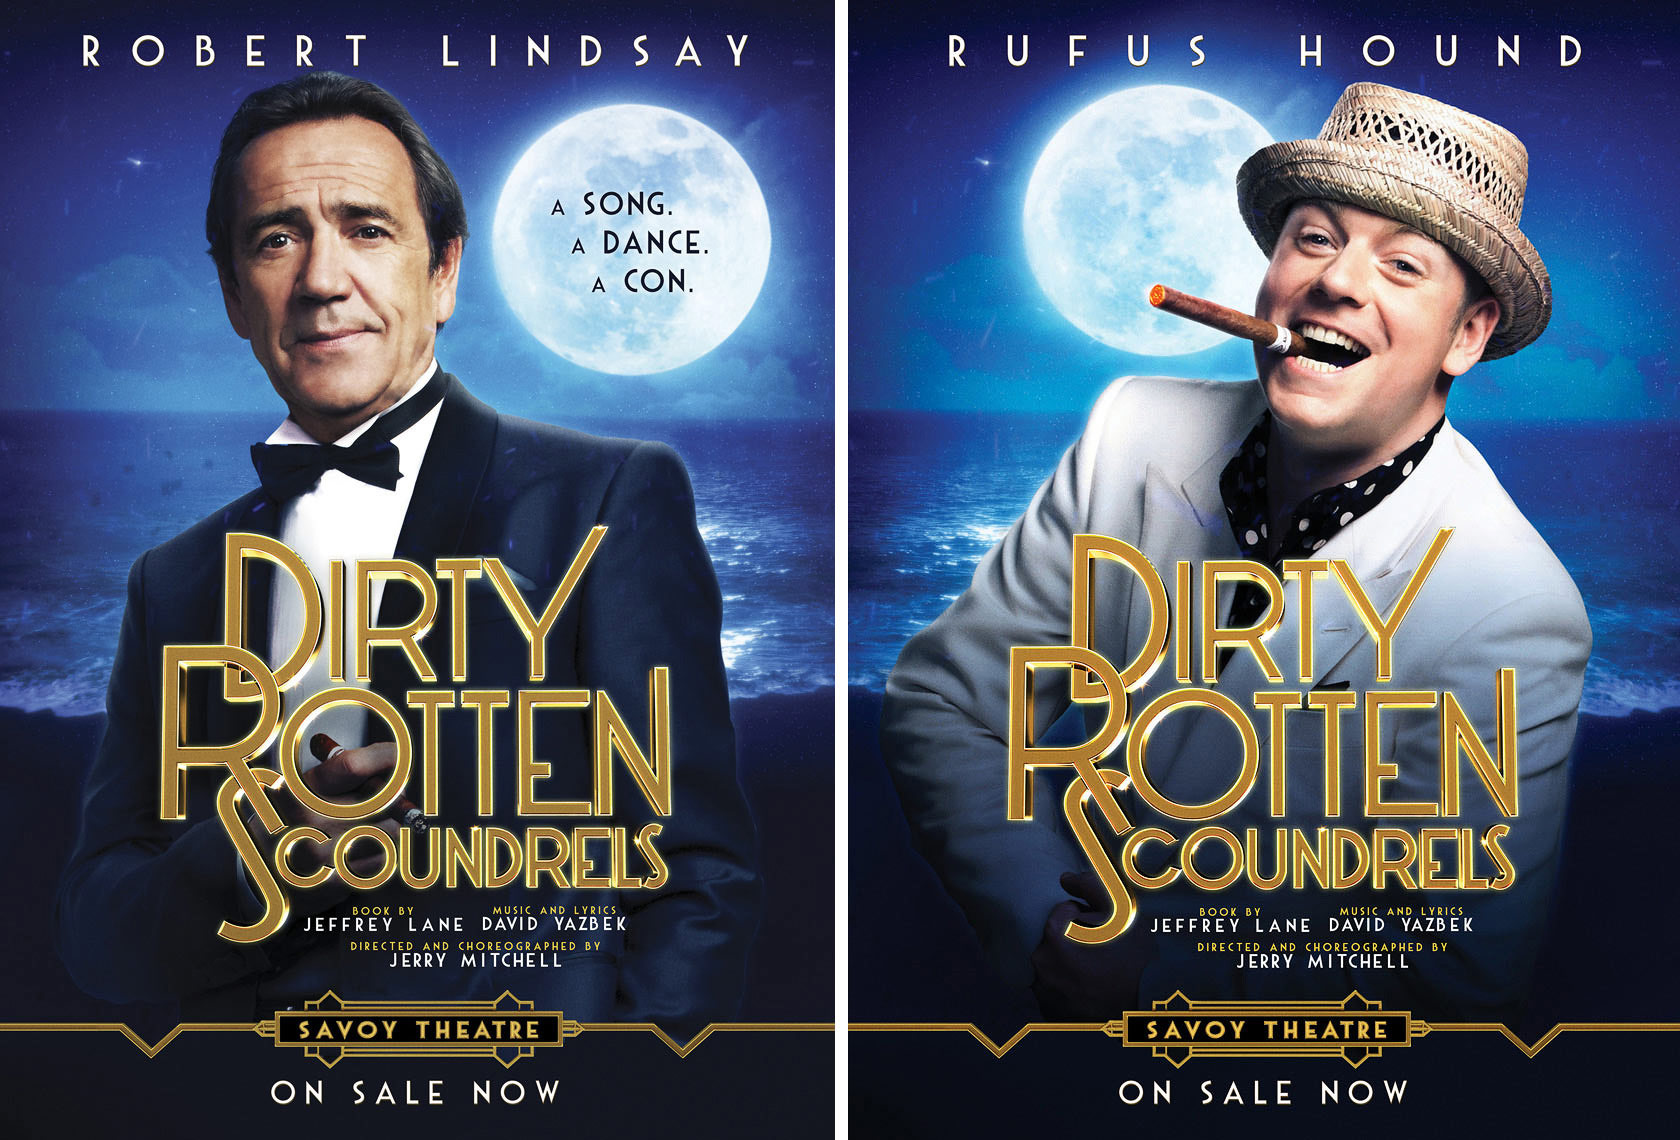 Dirty Rotten Scoundrels Portrait Music Advertising Theatre Old Vic BAFTA Trafalgar Photographer